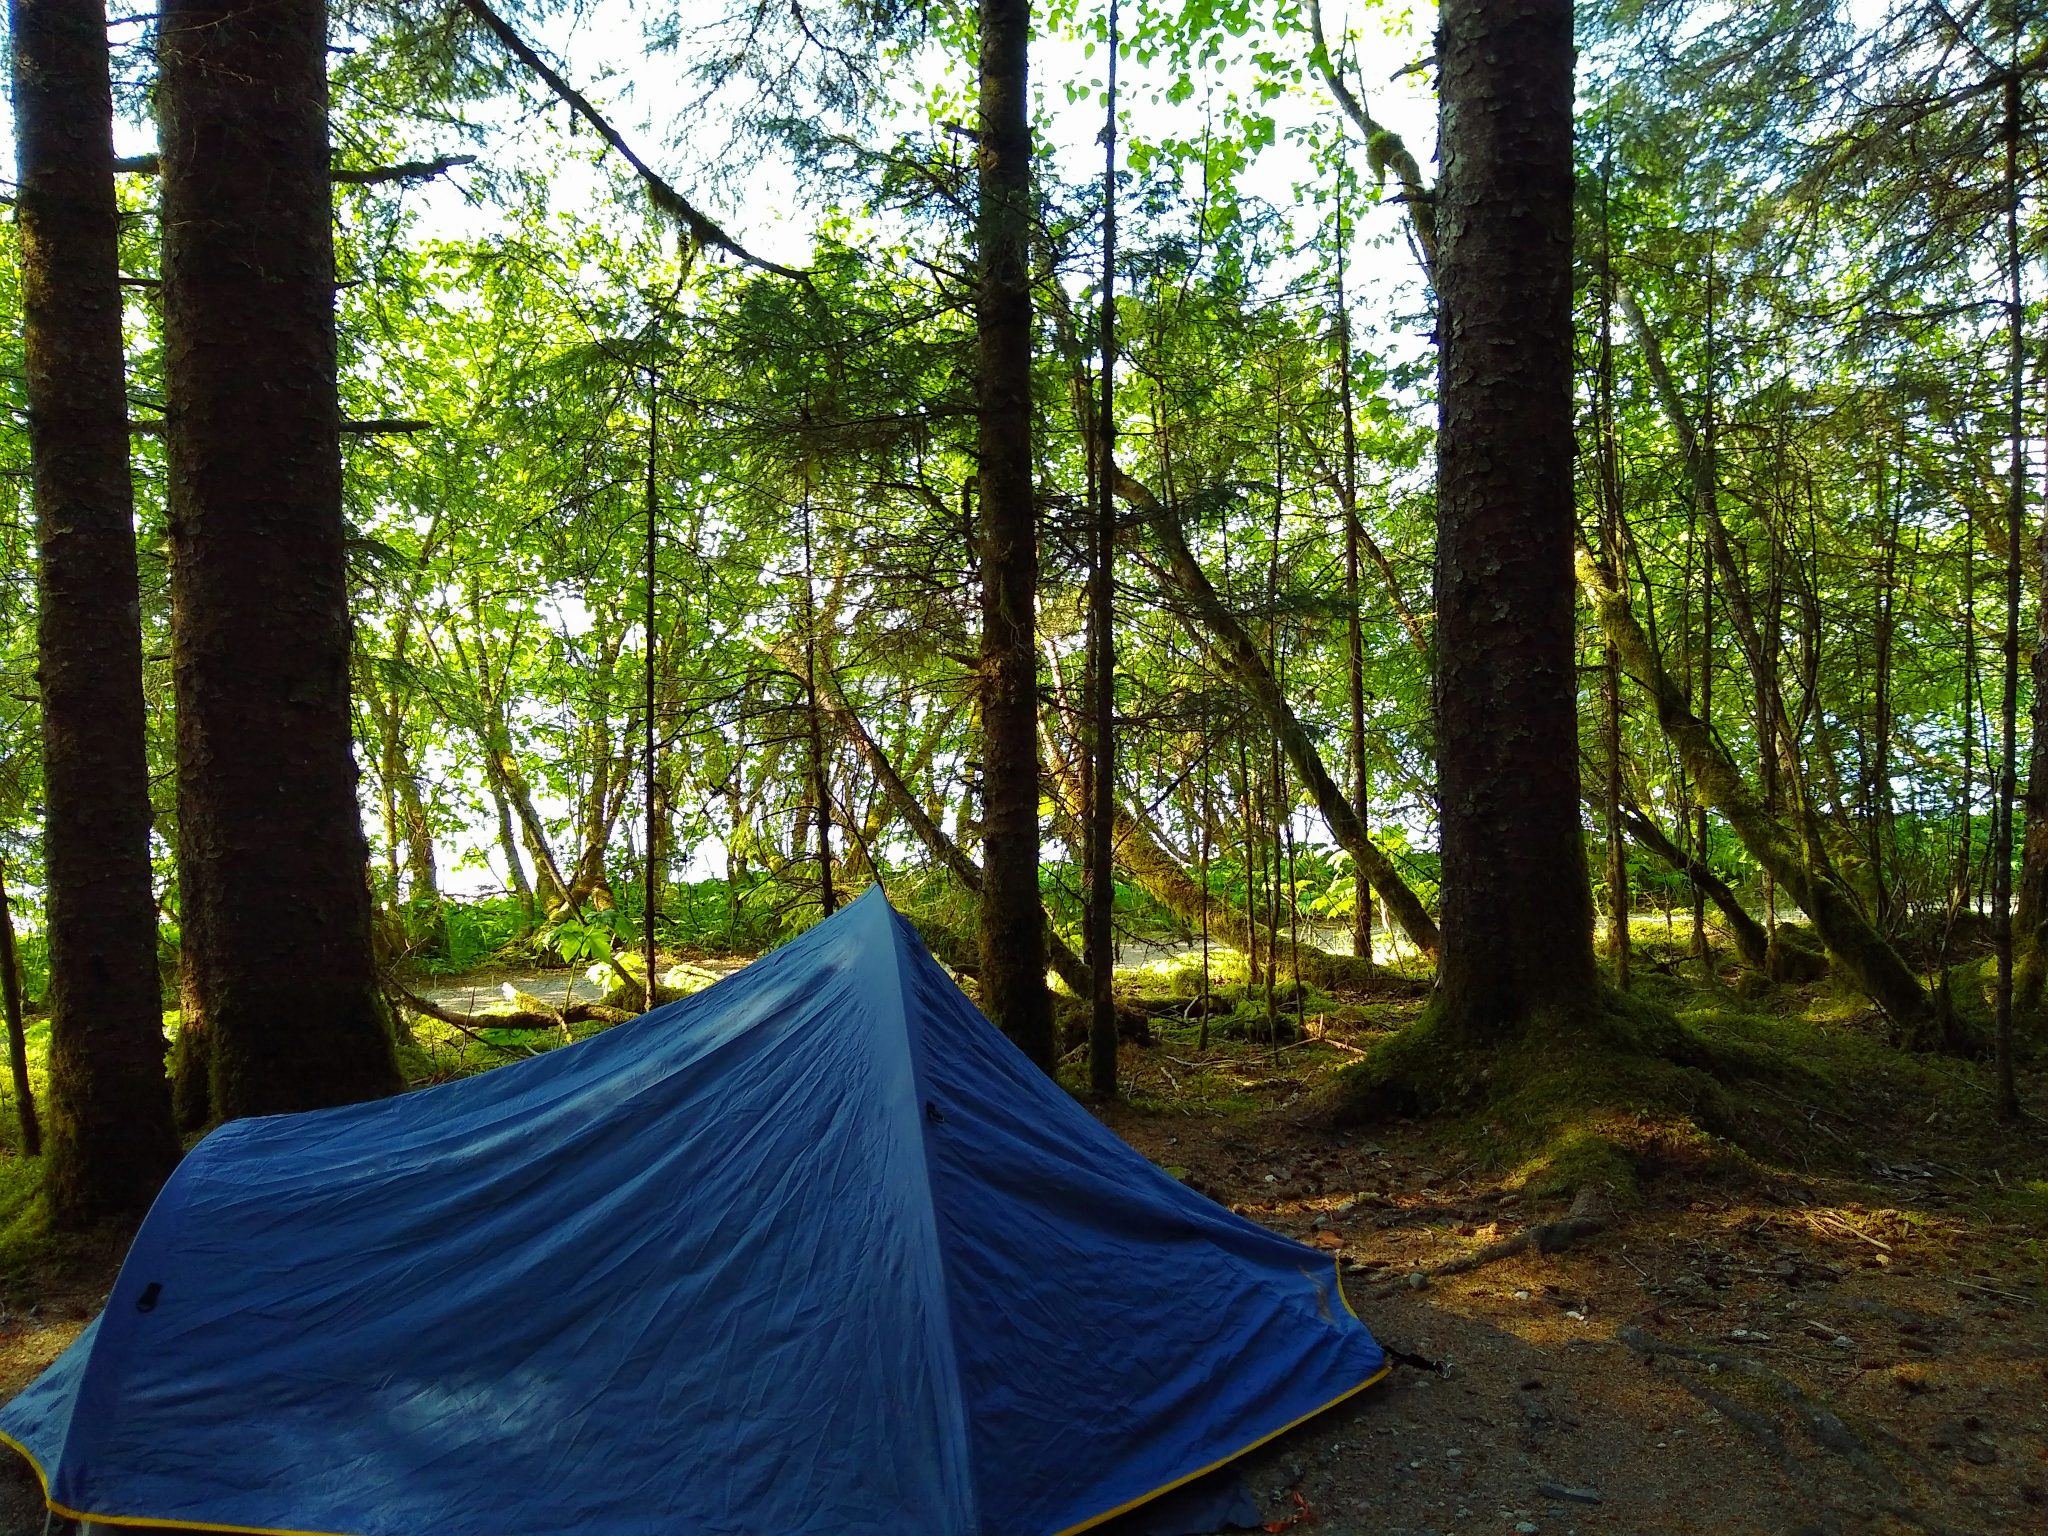 A small blue tent is pitched in a campsite to visit Glacier bay national park. There are green trees around, and the water is just visible between the trees